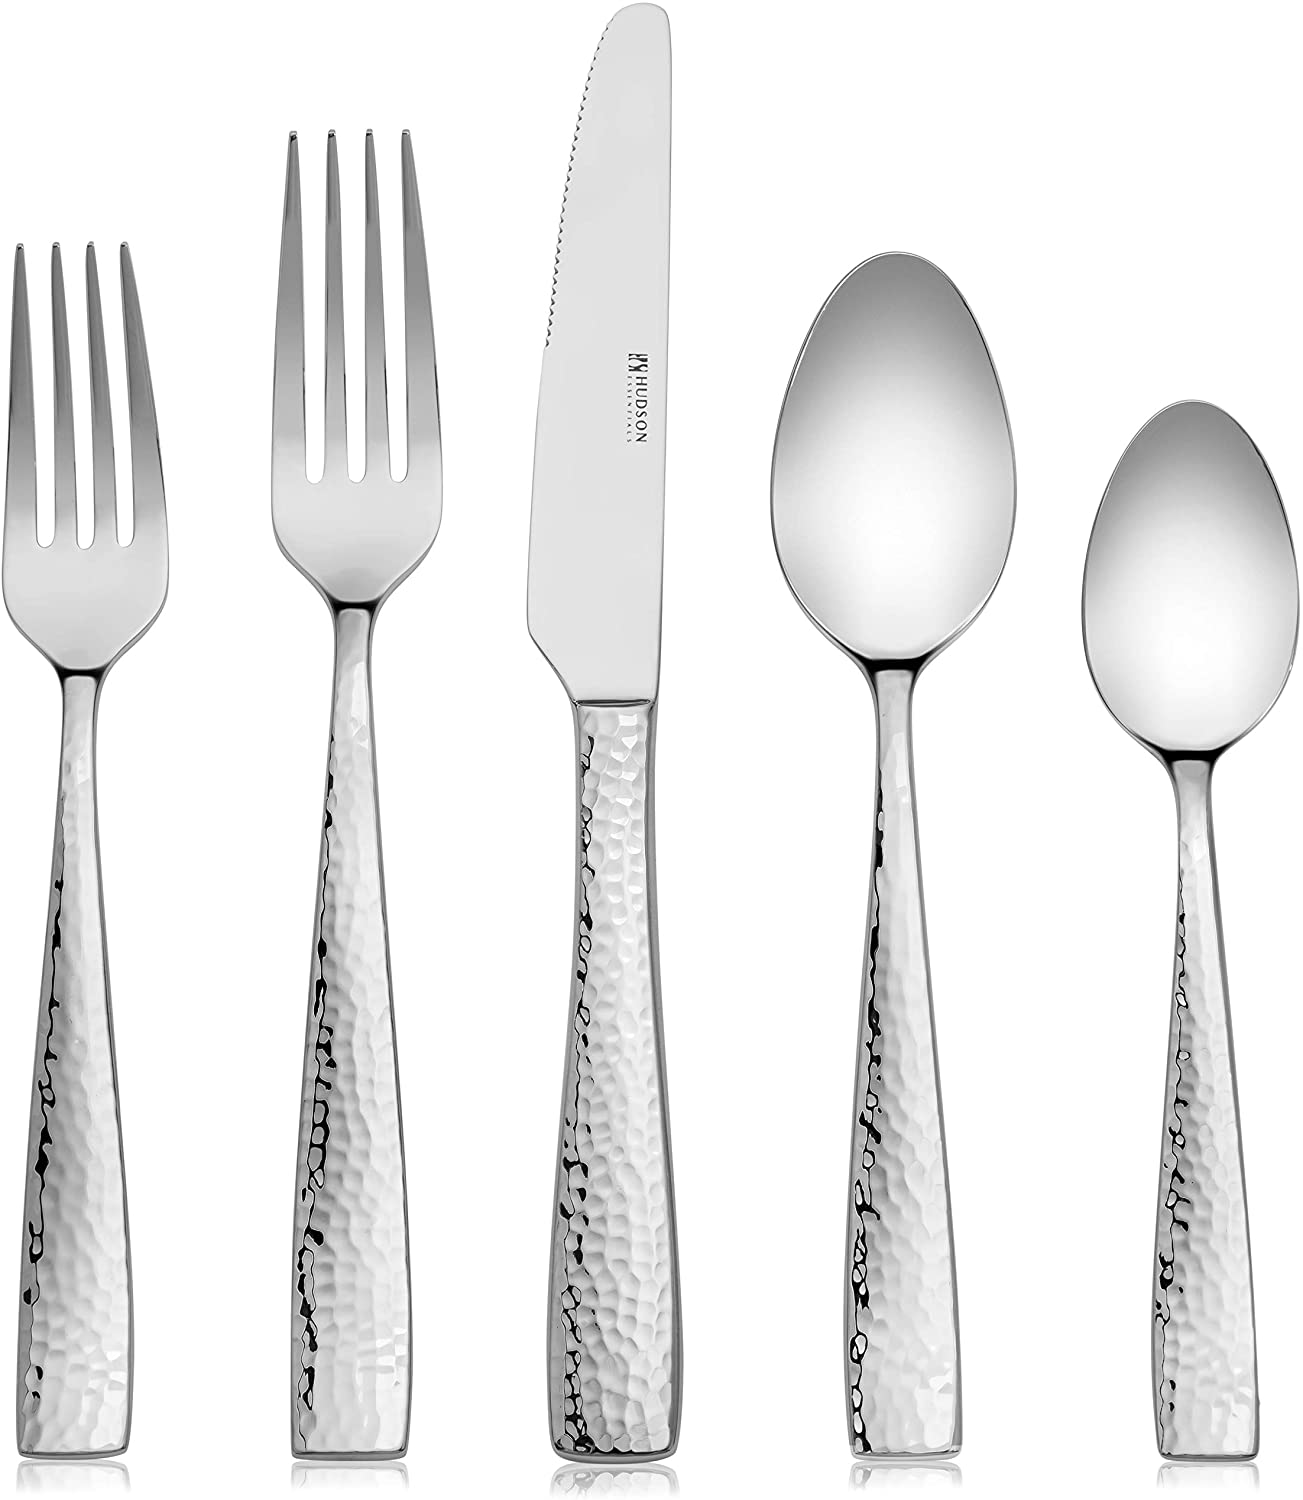 Hudson Essentials 20-Piece Satin Hammered 18/10 Stainless Steel Flatware Silverware Set - Service for 4 (20-Piece Satin Set)